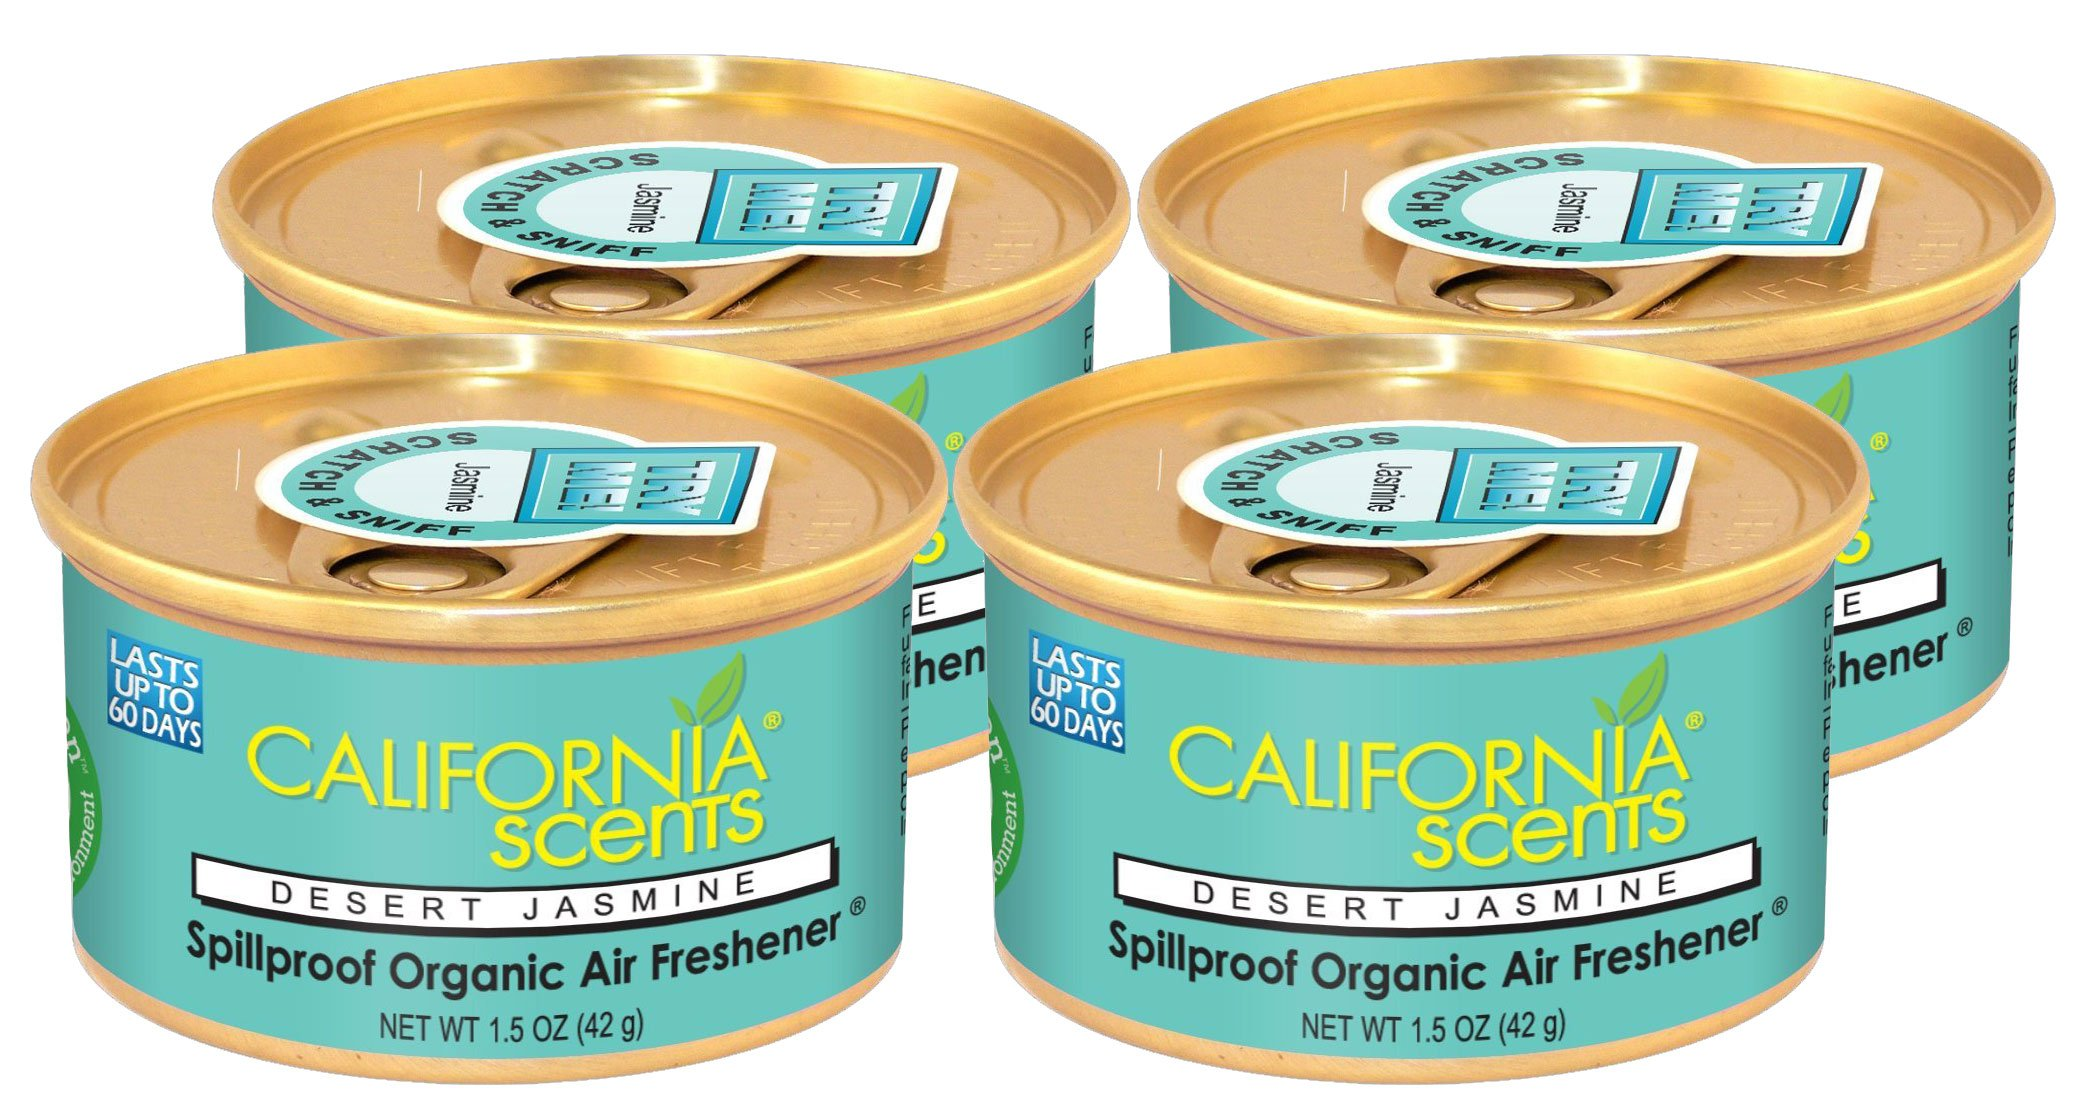 California Scents Spillproof Can Air Freshener Eco-Friendly Odor Neutralizer for Home, Car, Much More, Desert Jasmine, 1.5 oz, 12 Pack by California Scents